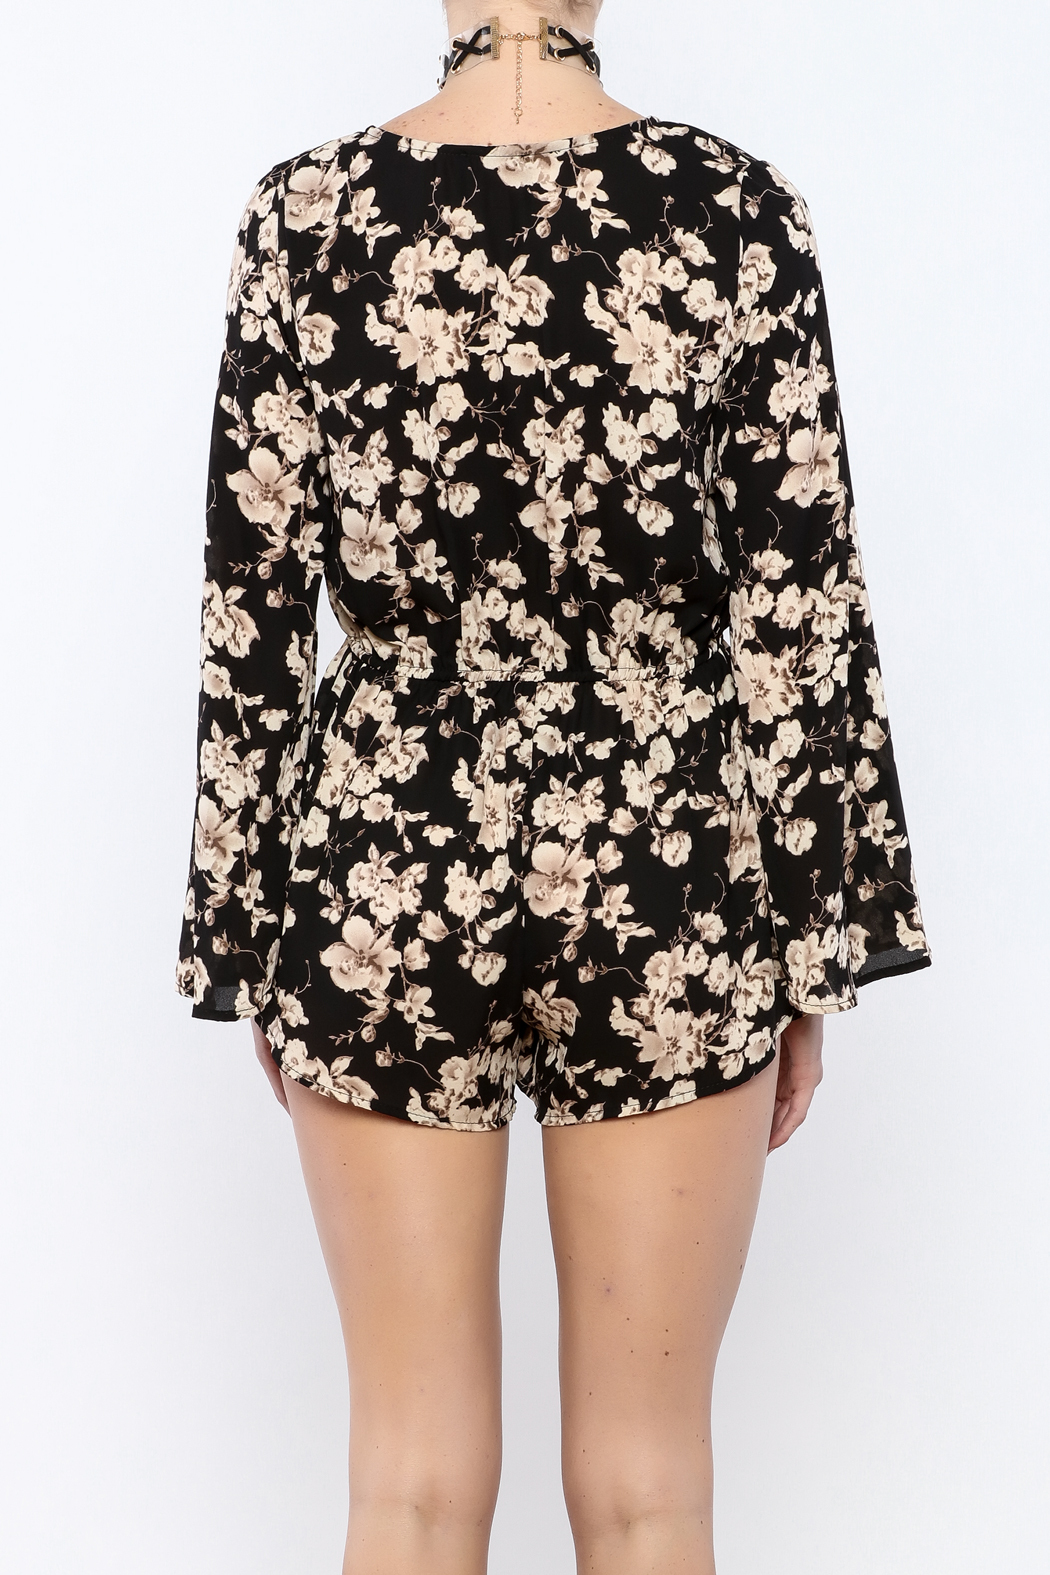 Coveted Clothing Black Floral Romper - Back Cropped Image